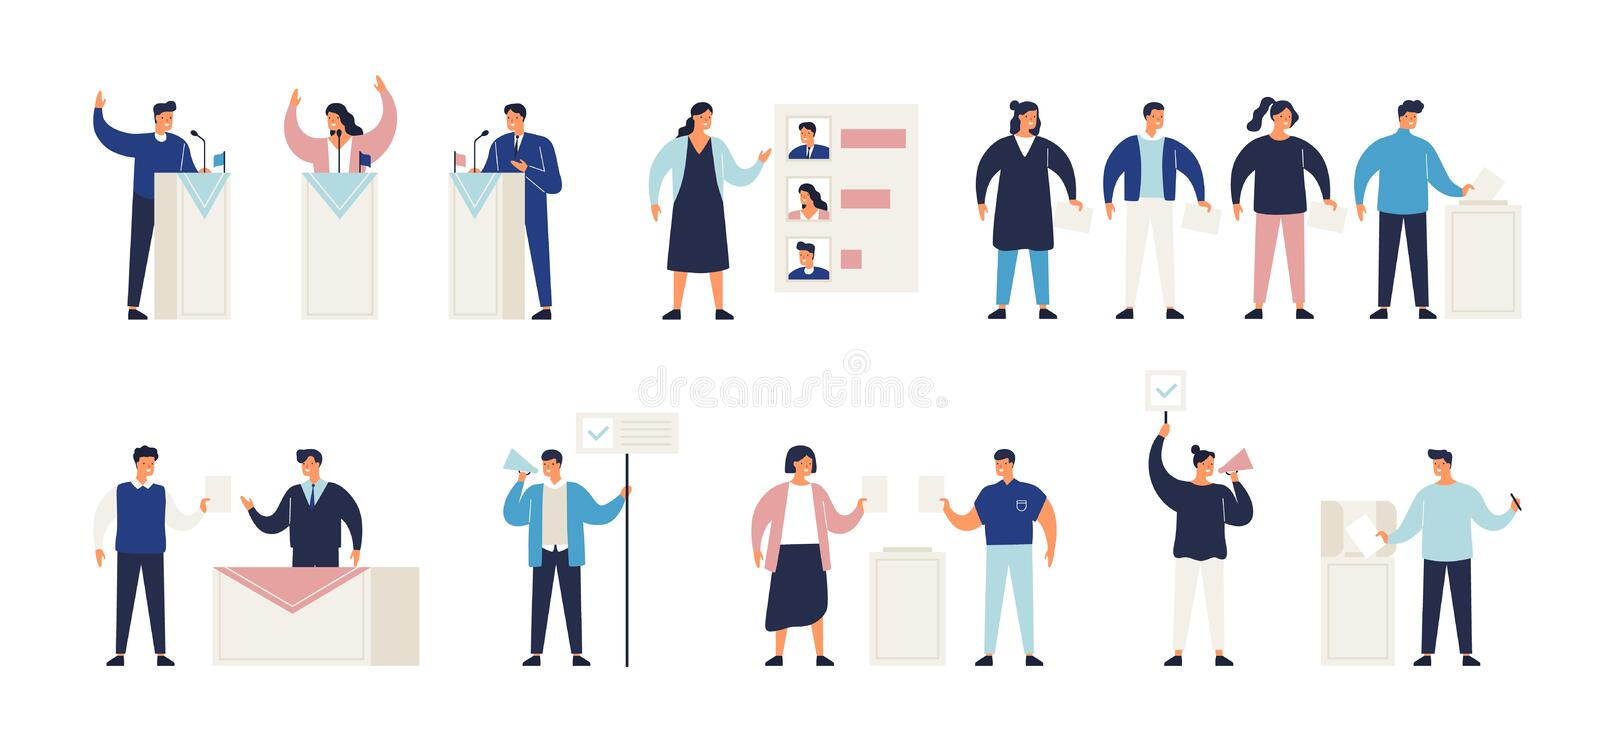 Political election process set. Bundle of people putting ballots in box at polling station, choosing candidate or voting. Itical election process set. Bundle of vector illustration